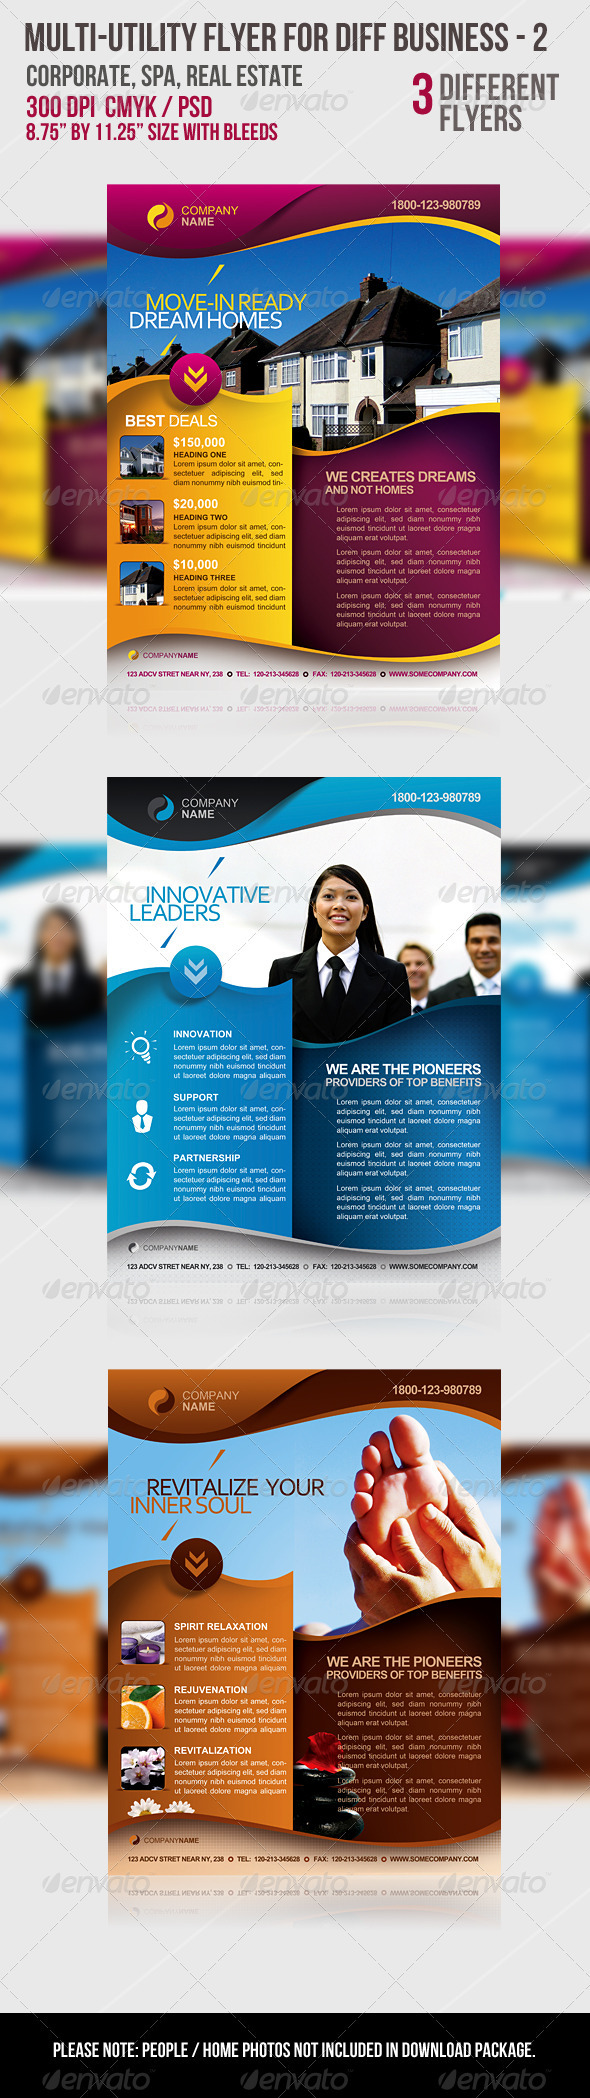 GraphicRiver Multi-utility Flyer For Different Business 2 2215848